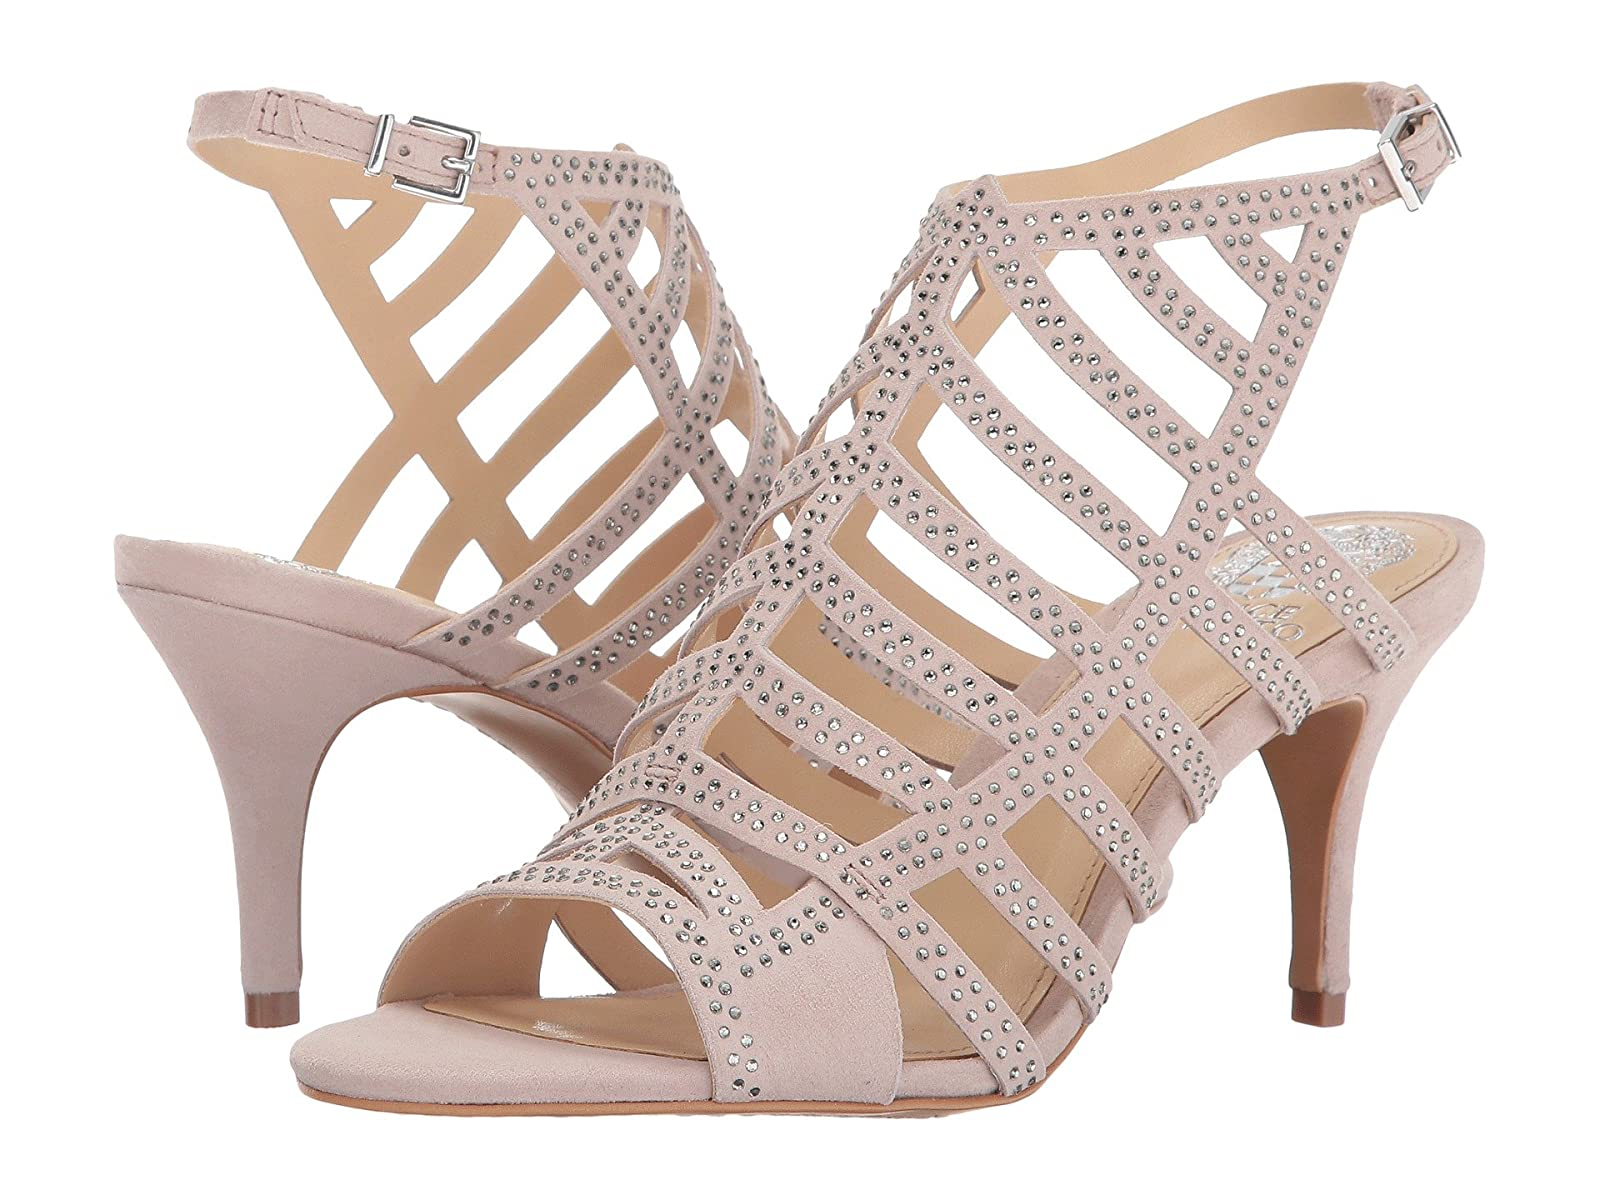 Vince Camuto PatinkaCheap and distinctive eye-catching shoes